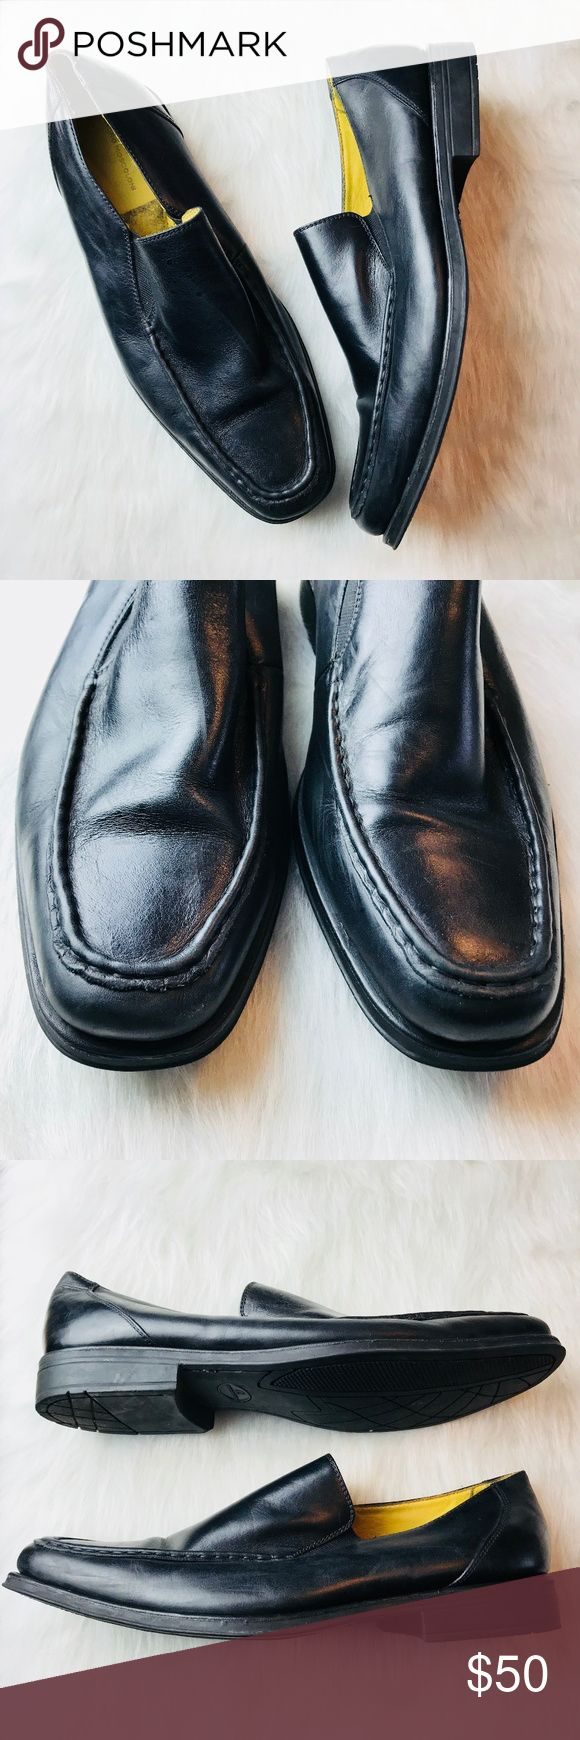 Sandro Moscoloni Black Leather Loafers Pre-owned slip on loafers made in Brazil.  These soft leather shoes are size 13 D Sandro Moscoloni Shoes Loafers & Slip-Ons